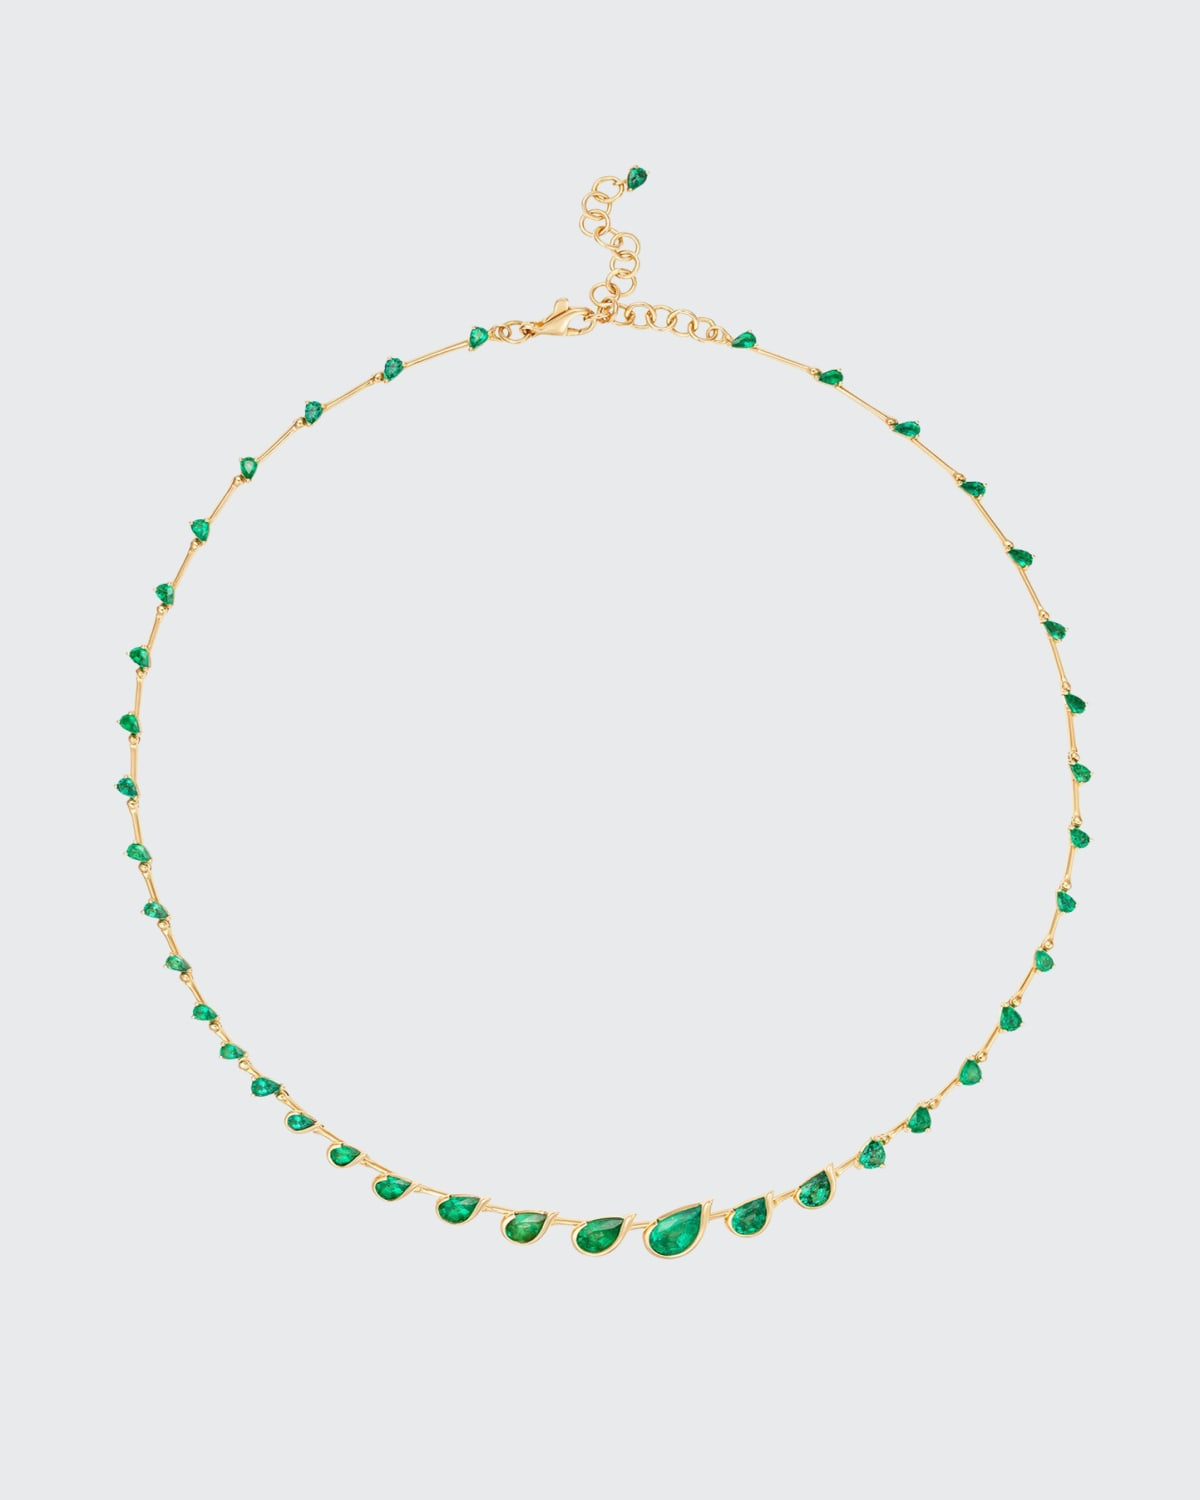 Flicker Emerald Necklace in 18K Yellow Gold